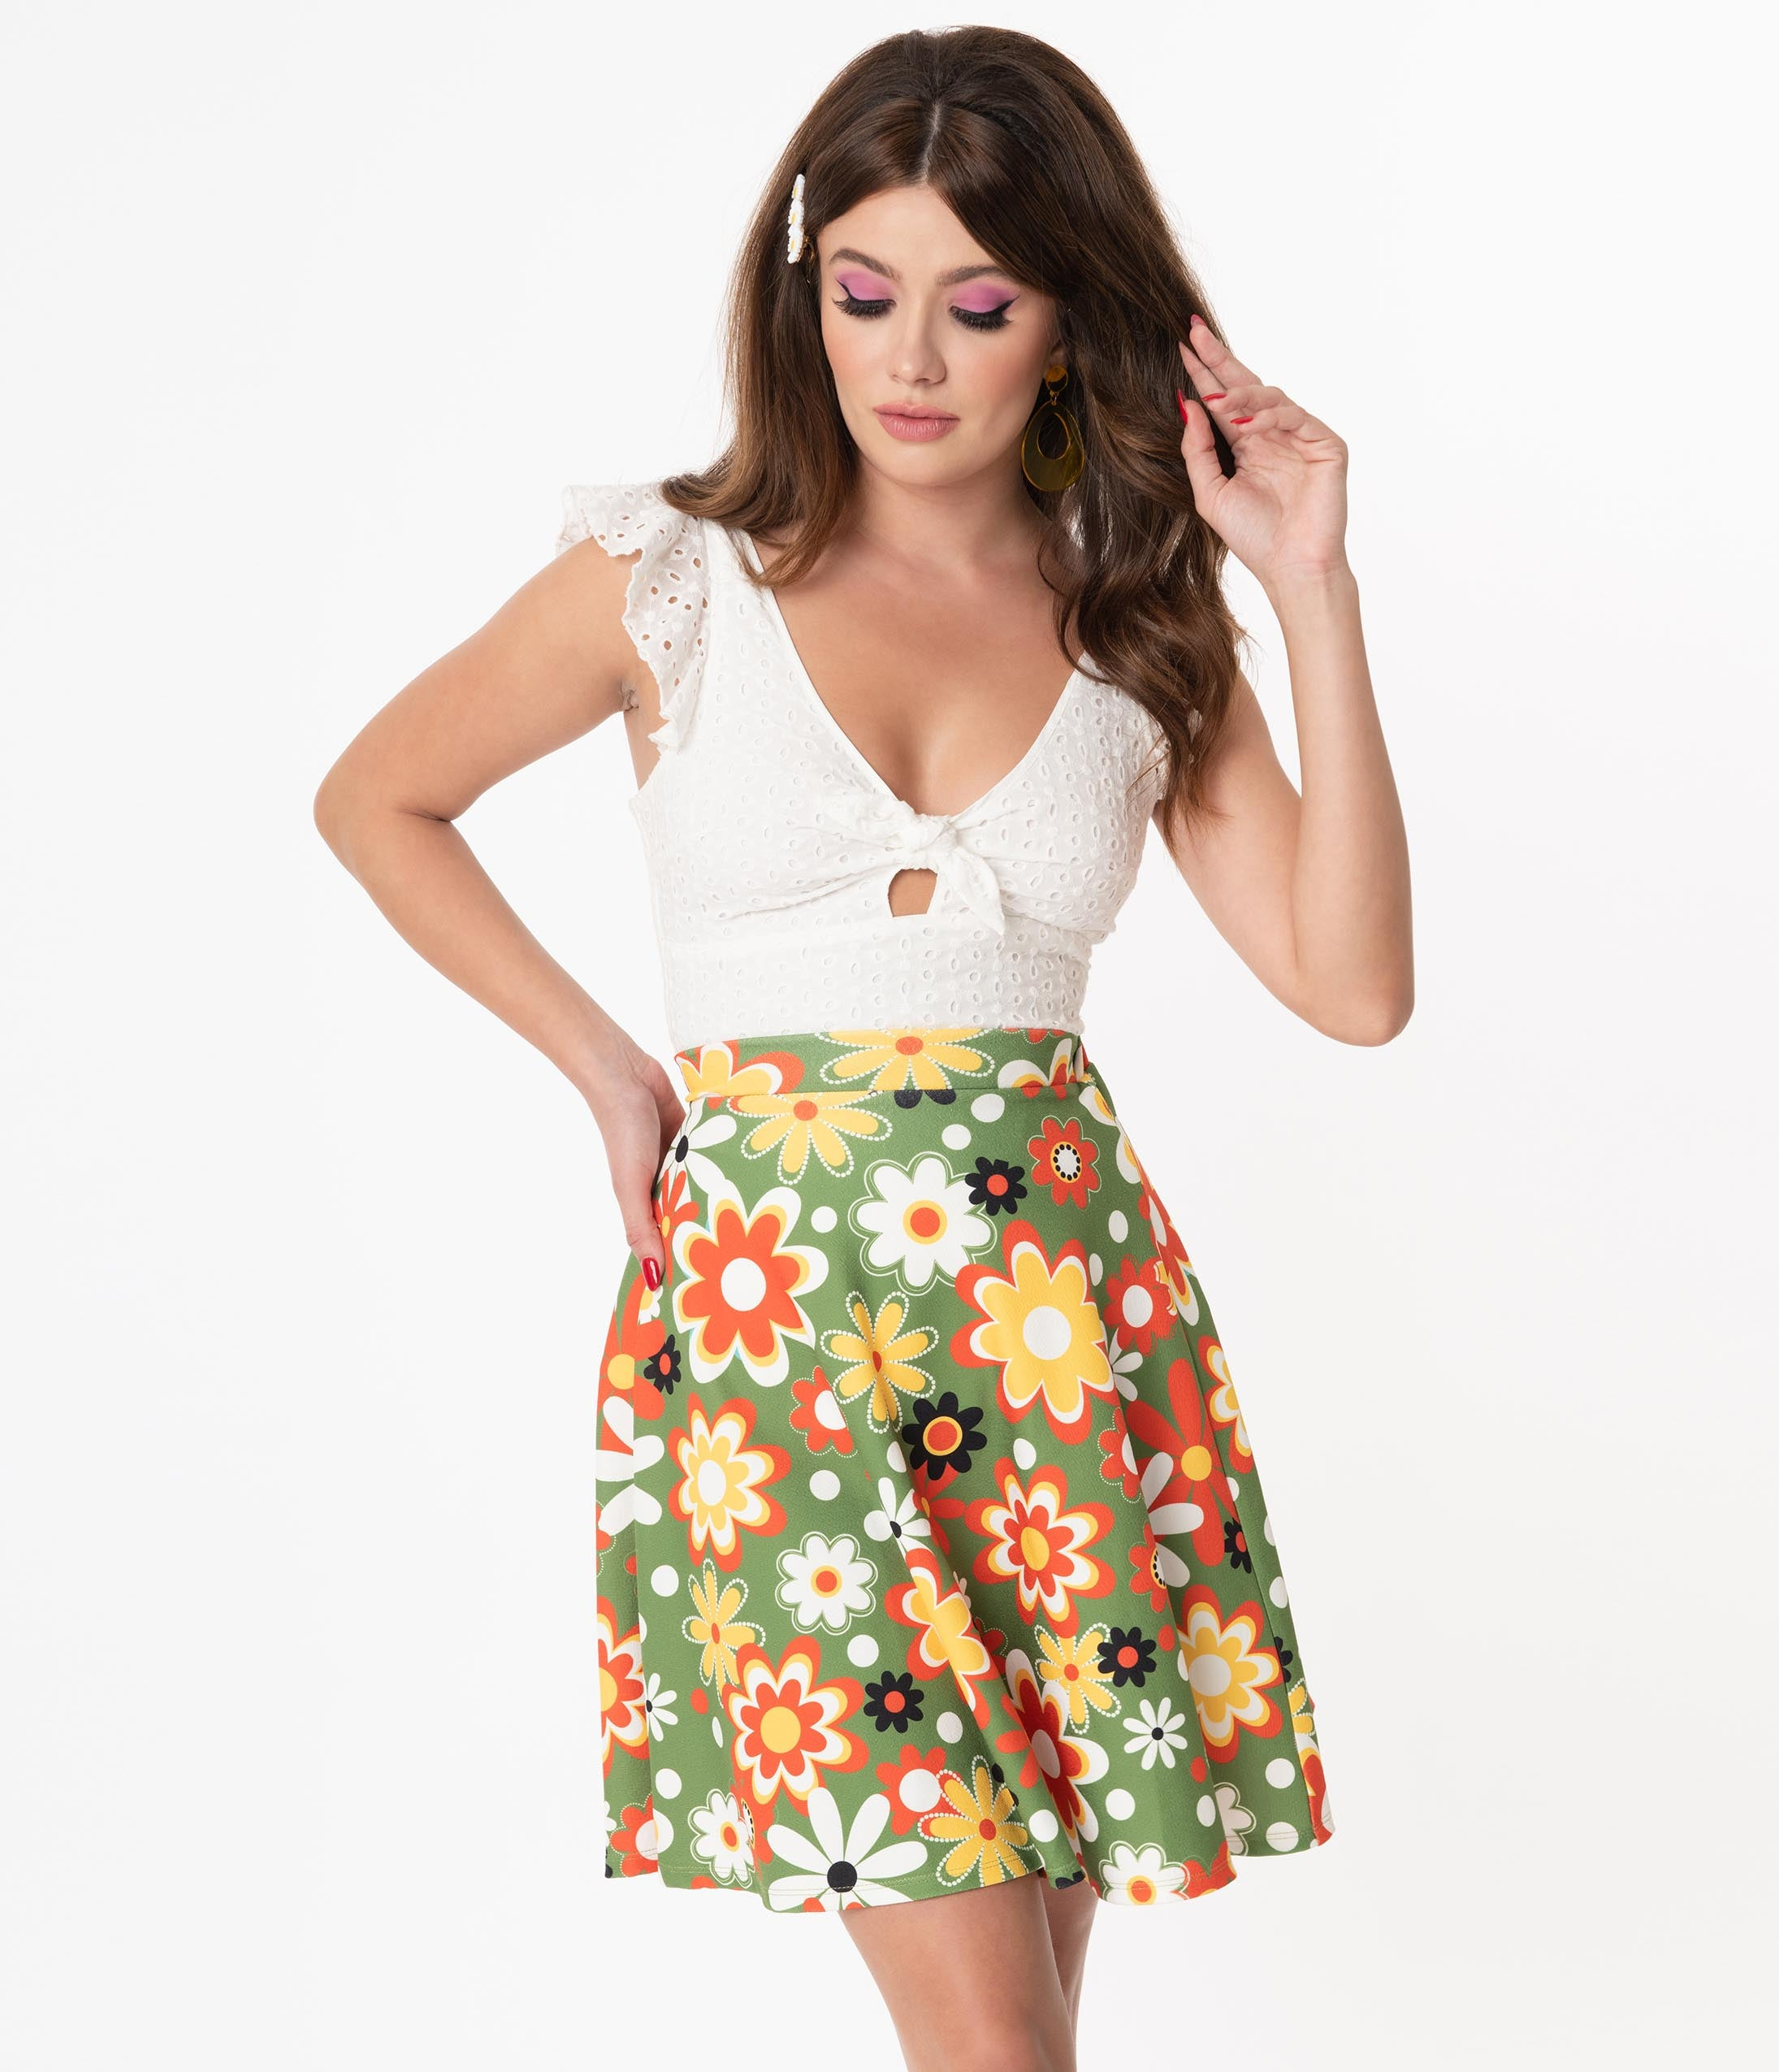 1960s Style Clothing & 60s Fashion Smak Parlour Retro Geo Floral Print Sweet Talk Skirt $48.00 AT vintagedancer.com